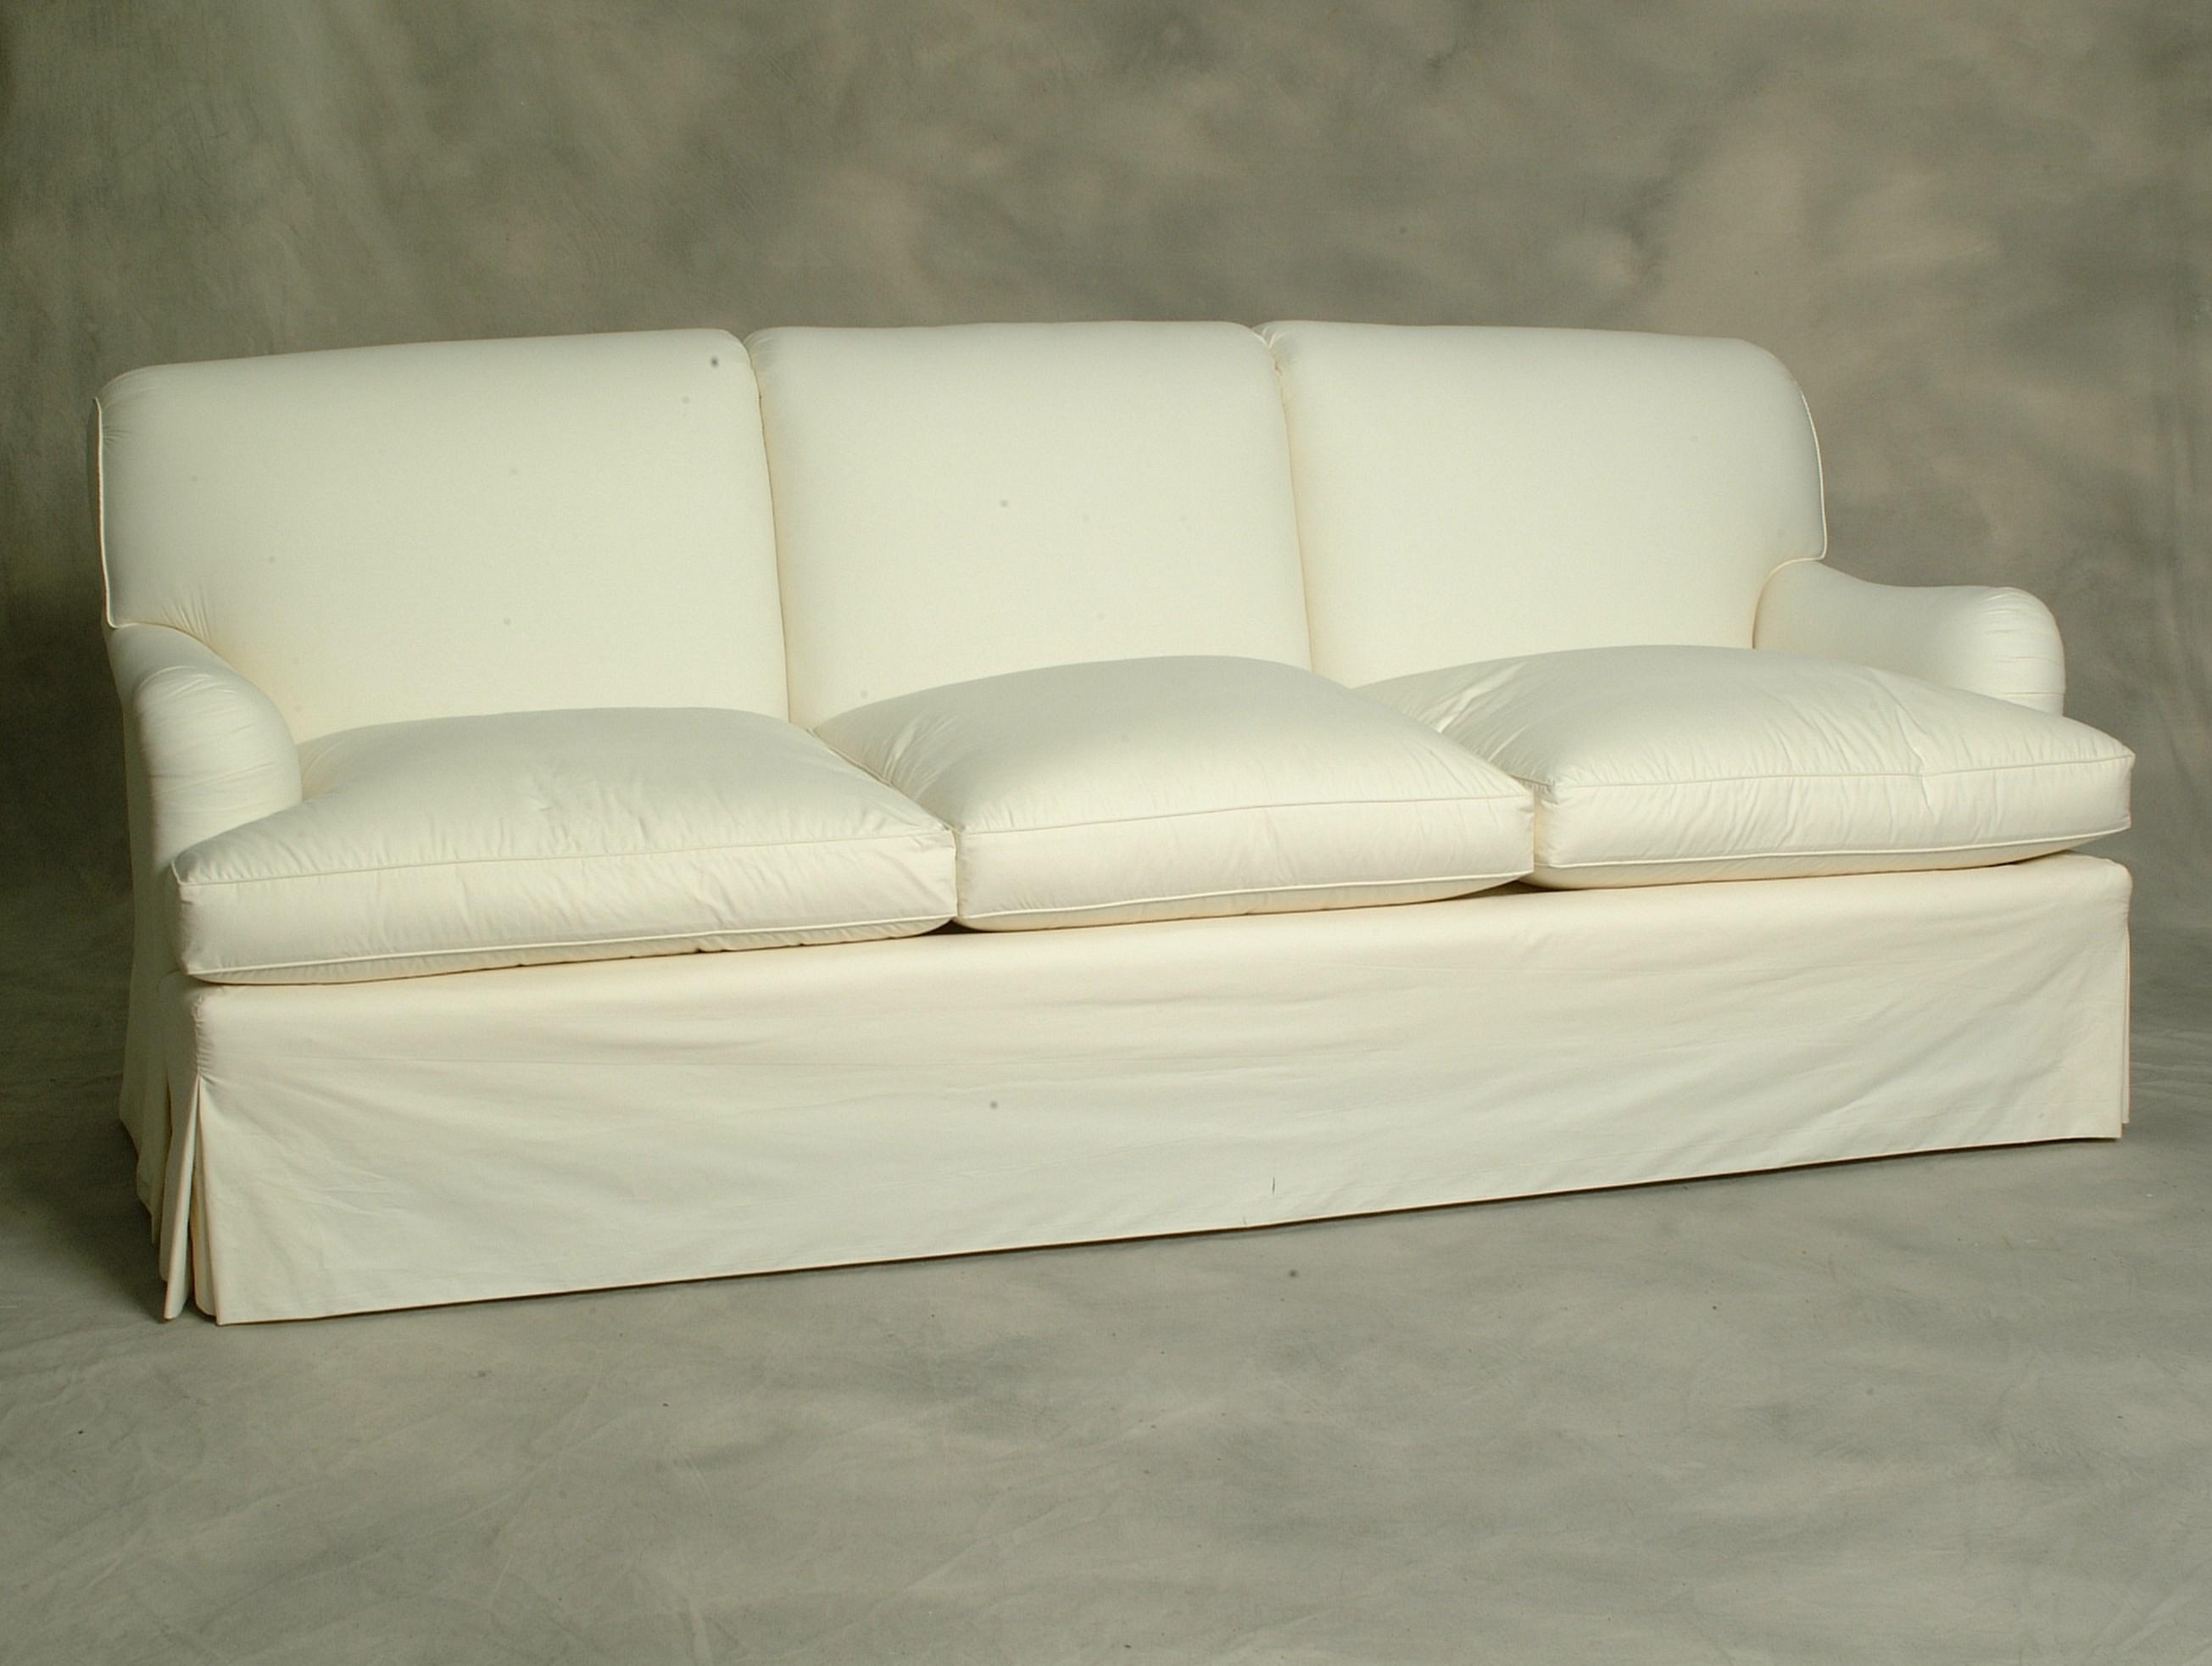 Custom Sofa Cushions Nyc | Cushions Decoration Intended For Custom Sofas Nyc (View 3 of 20)